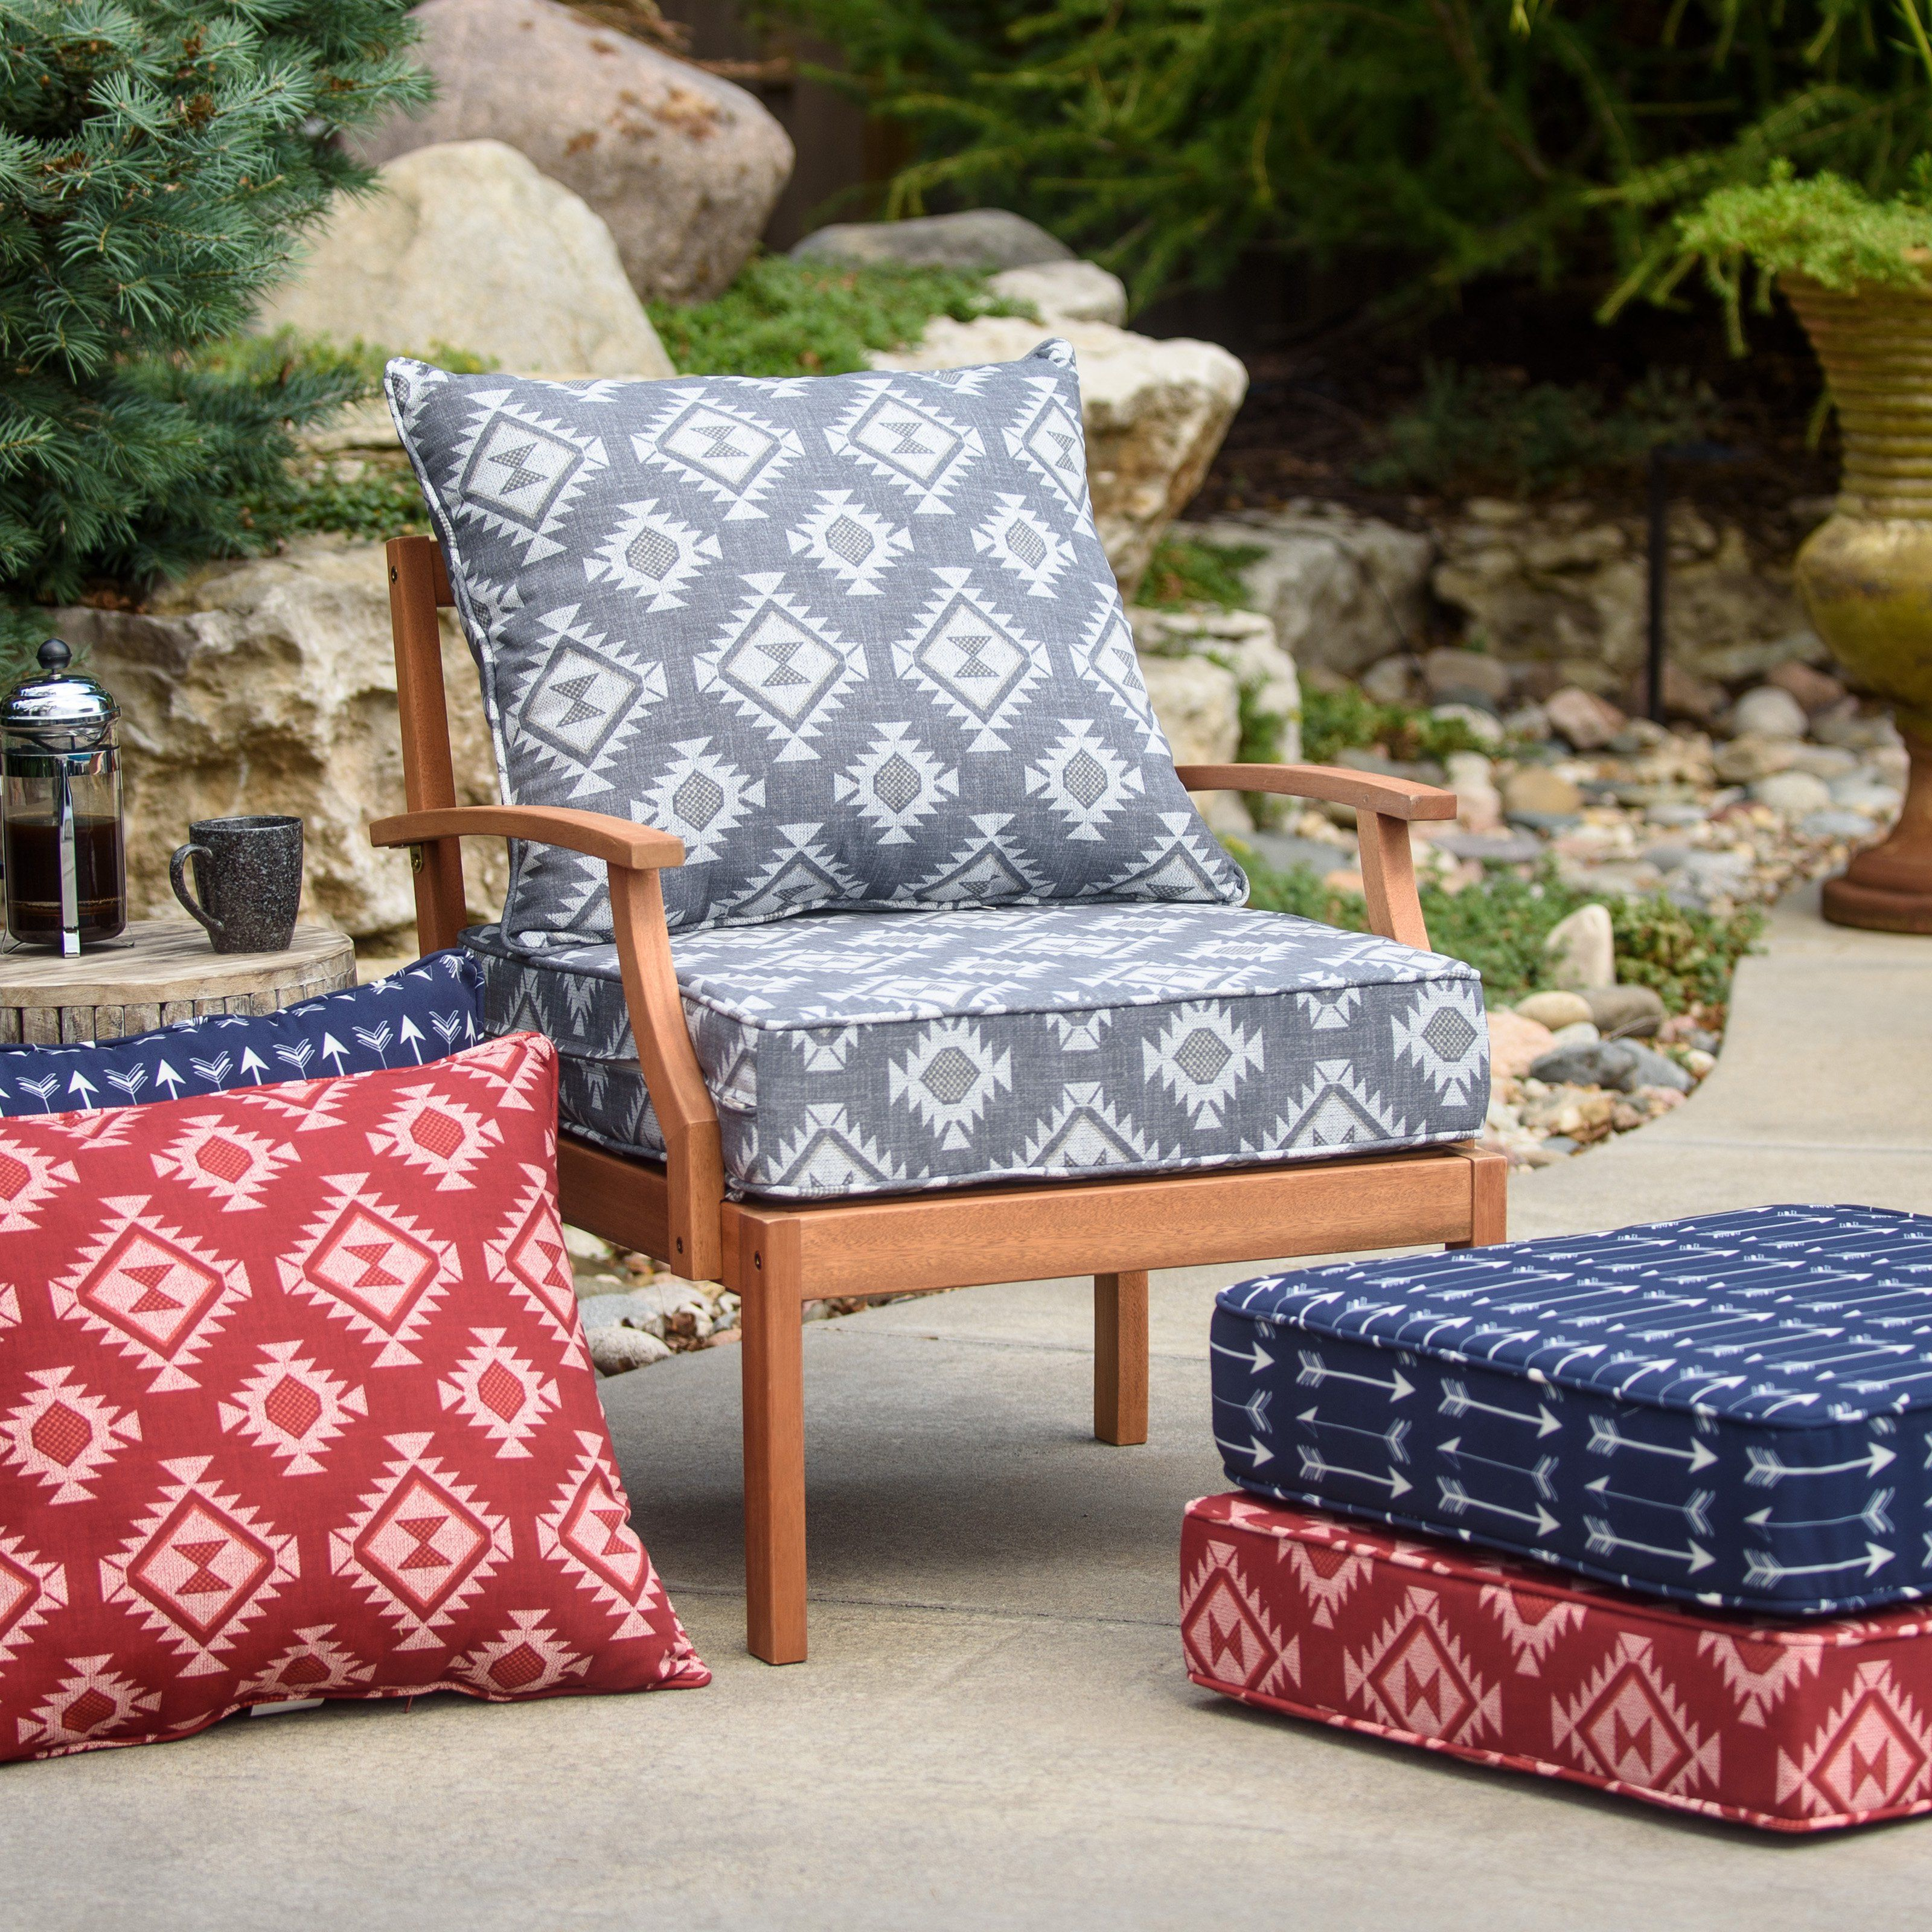 Coral Coast Southwest Outdoor Aztec Pattern Deep Seating Seat Cushion From Hayneedle Com Deep Seat Cushions Deep Seating Patio Cushions